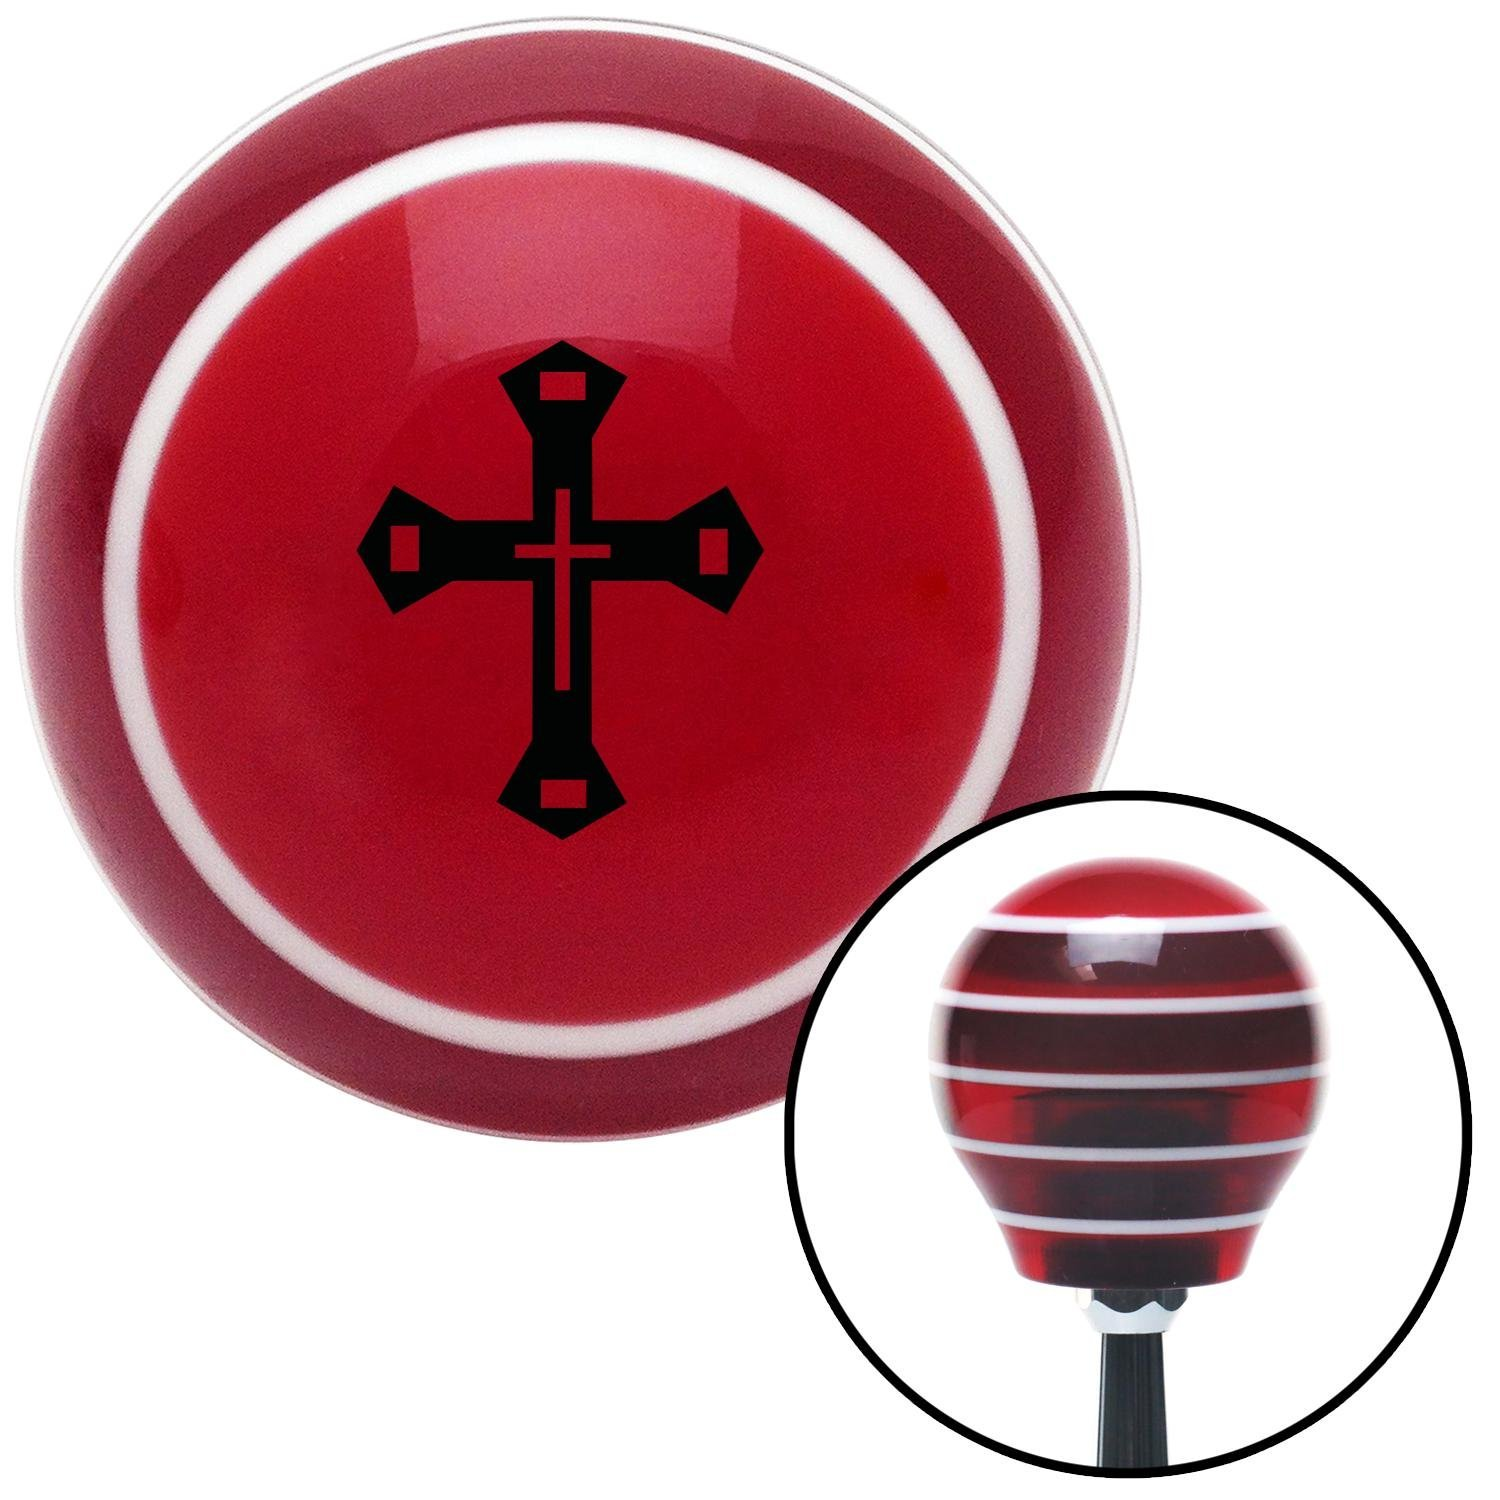 Black Budded Cross American Shifter 116972 Red Stripe Shift Knob with M16 x 1.5 Insert